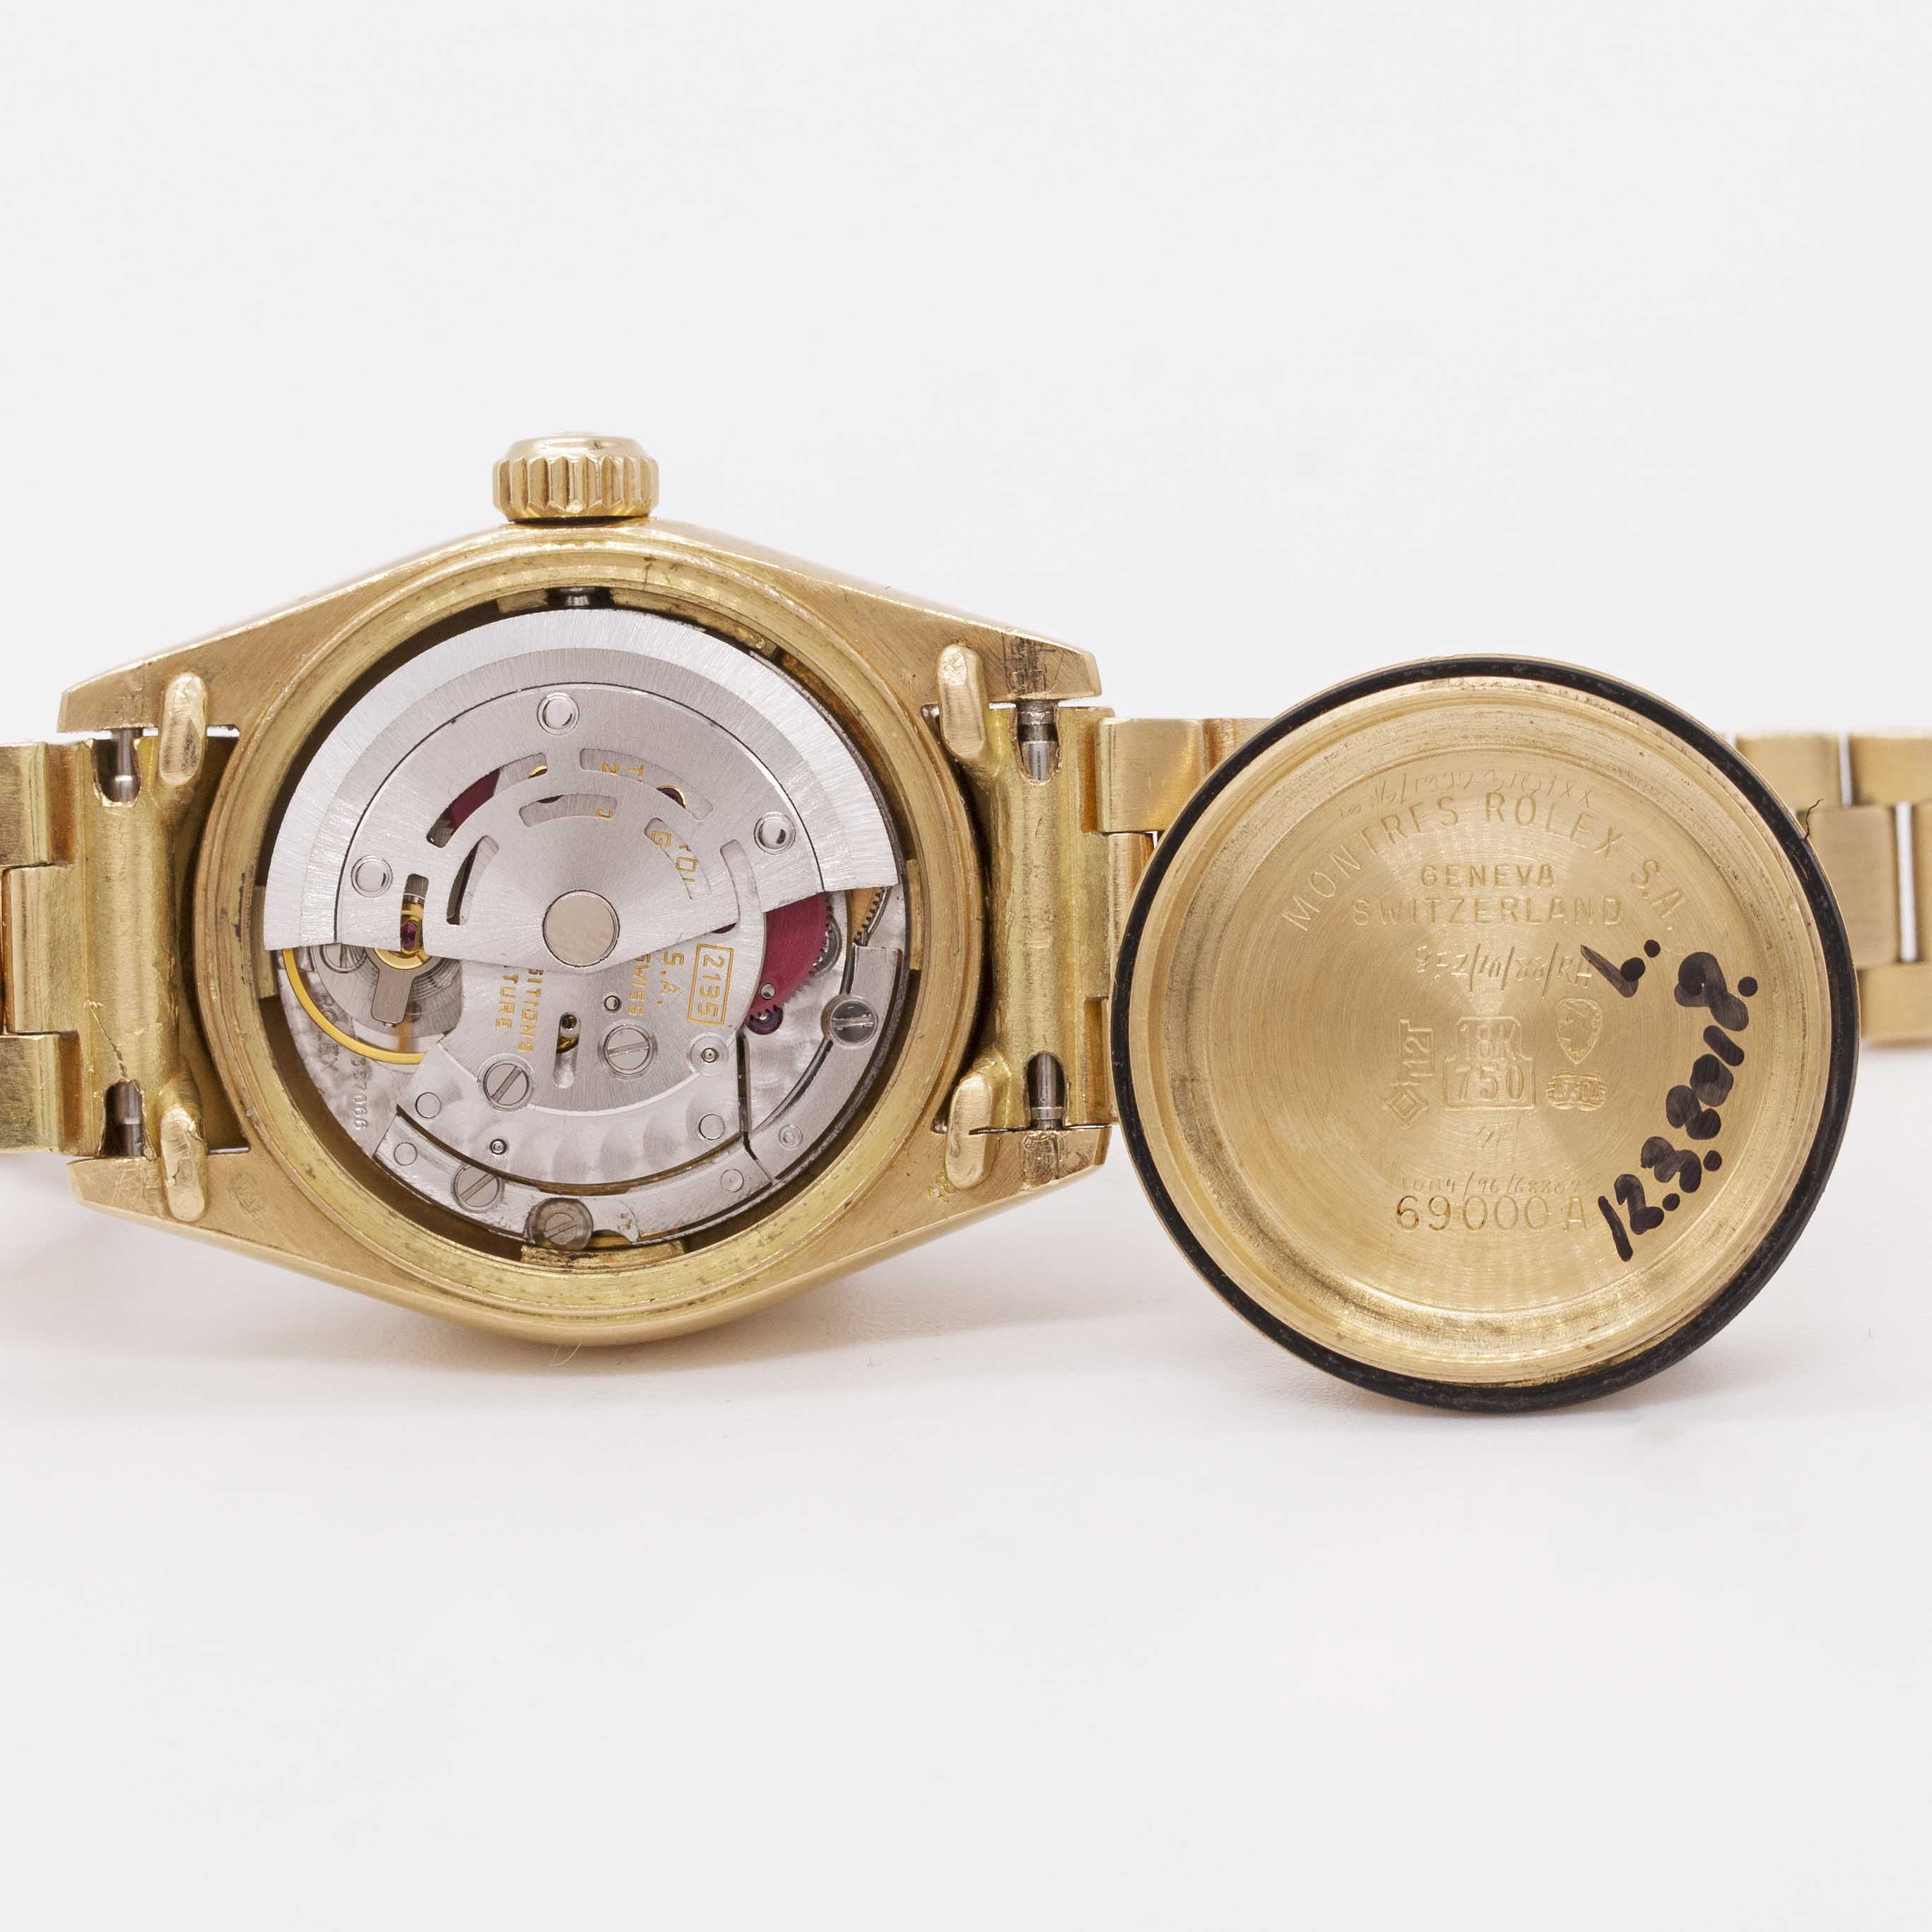 Lot 27 - A LADIES 18K SOLID GOLD ROLEX OYSTER PERPETUAL DATEJUST BRACELET WATCH CIRCA 1985, REF. 69178 WITH